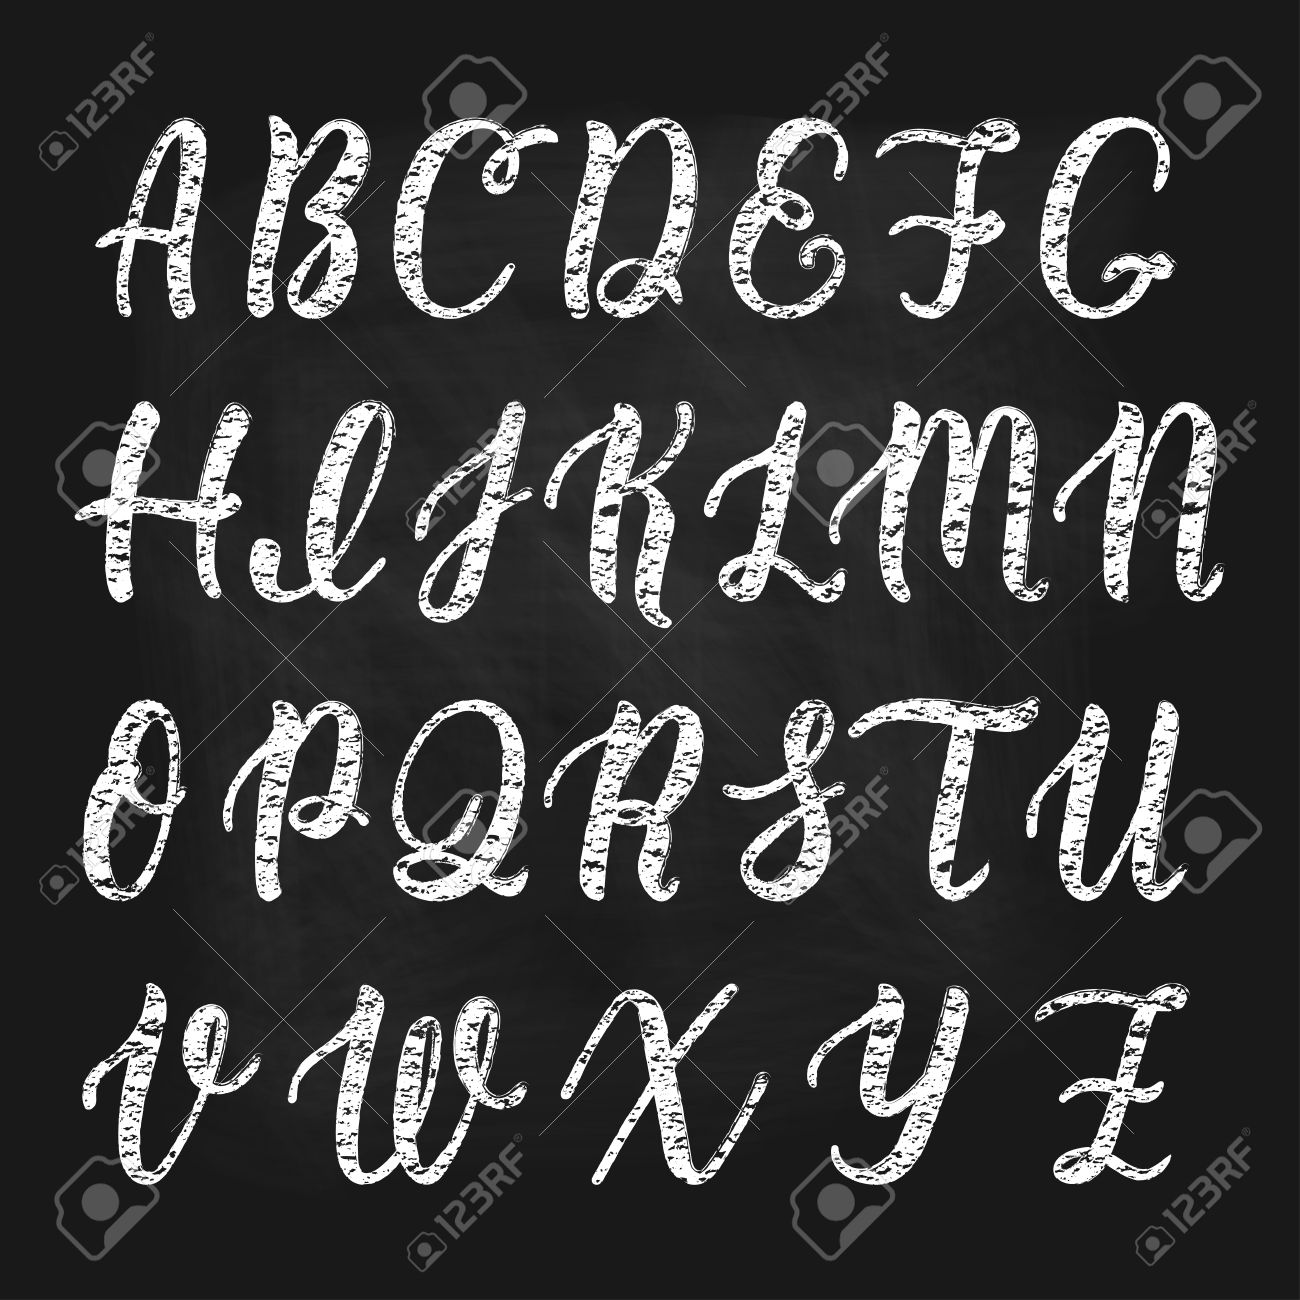 Chalk Hand Drawn Latin Calligraphy Brush Script Of Capital Letters Calligraphic Alphabet Stock Vector